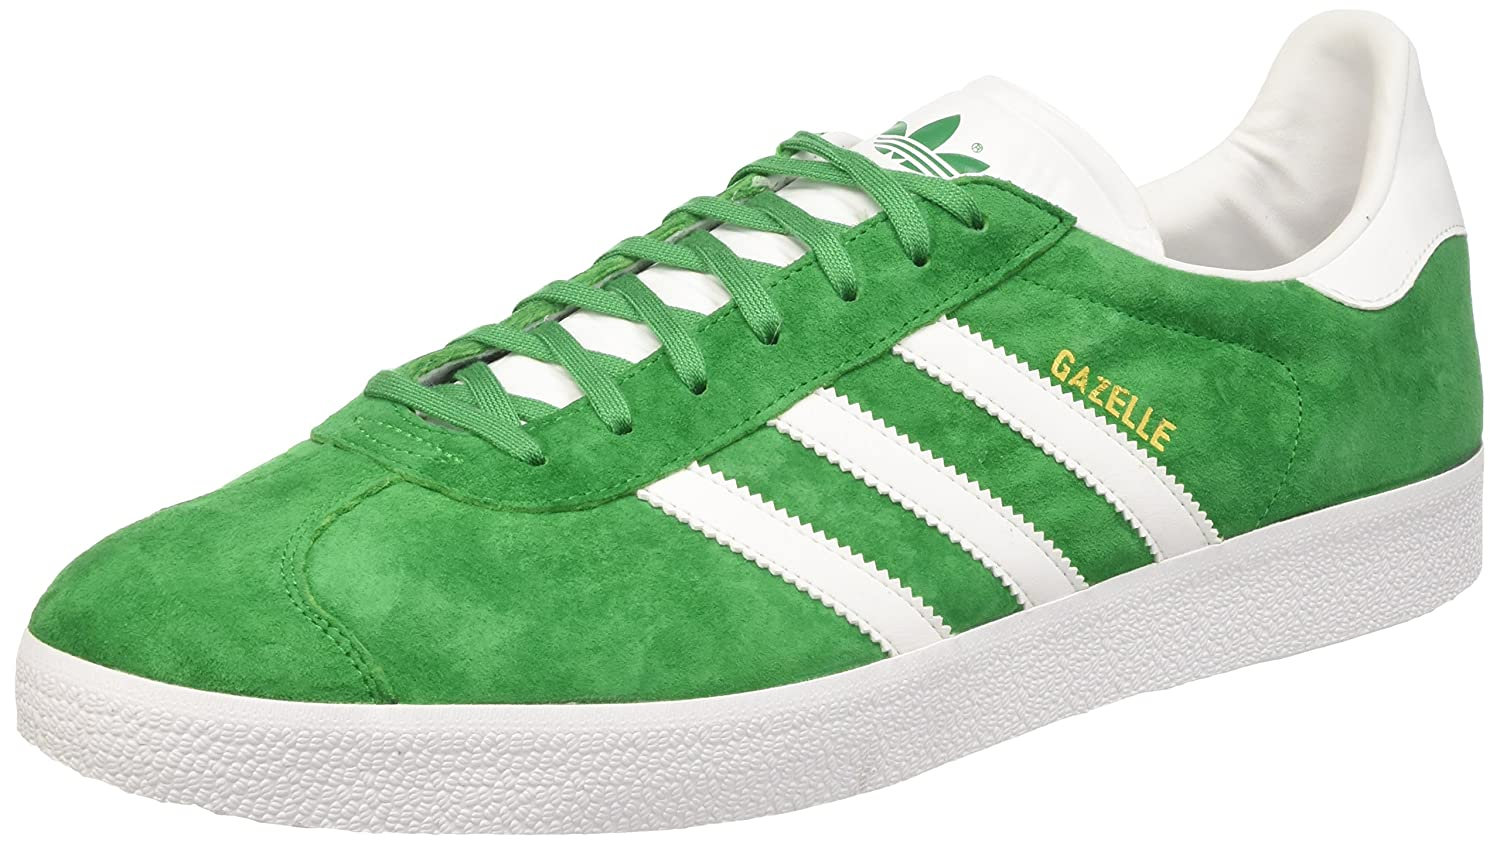 adidas Originals Gazelle Zapatillas de Deporte Unisex Adulto